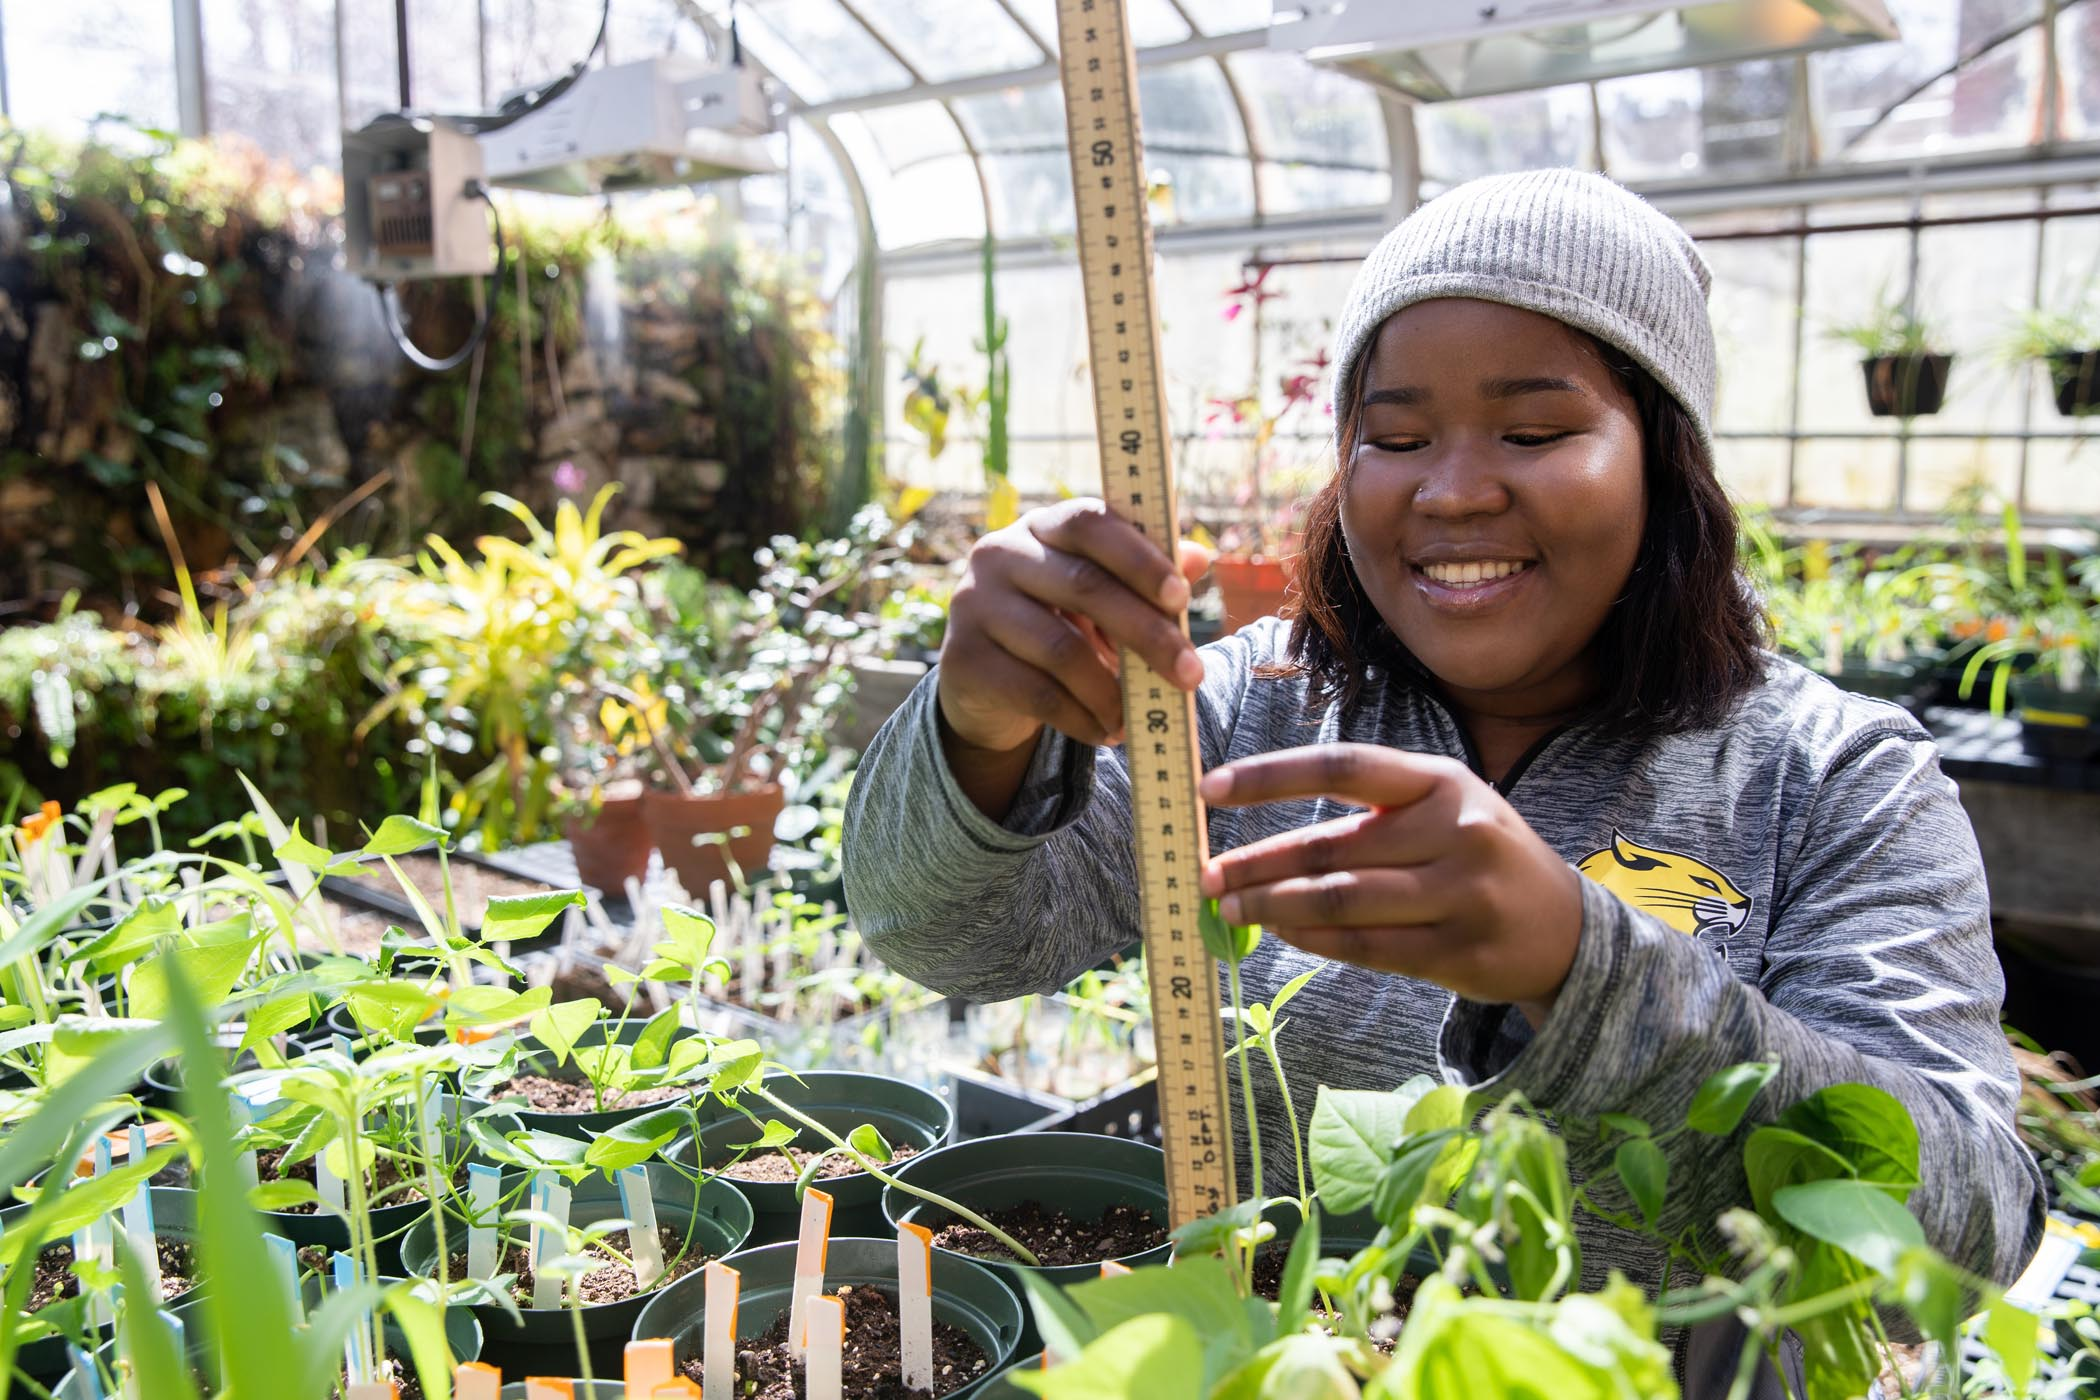 Jdody Misidor measures plant growth in the greenhouse at Martin Science Center